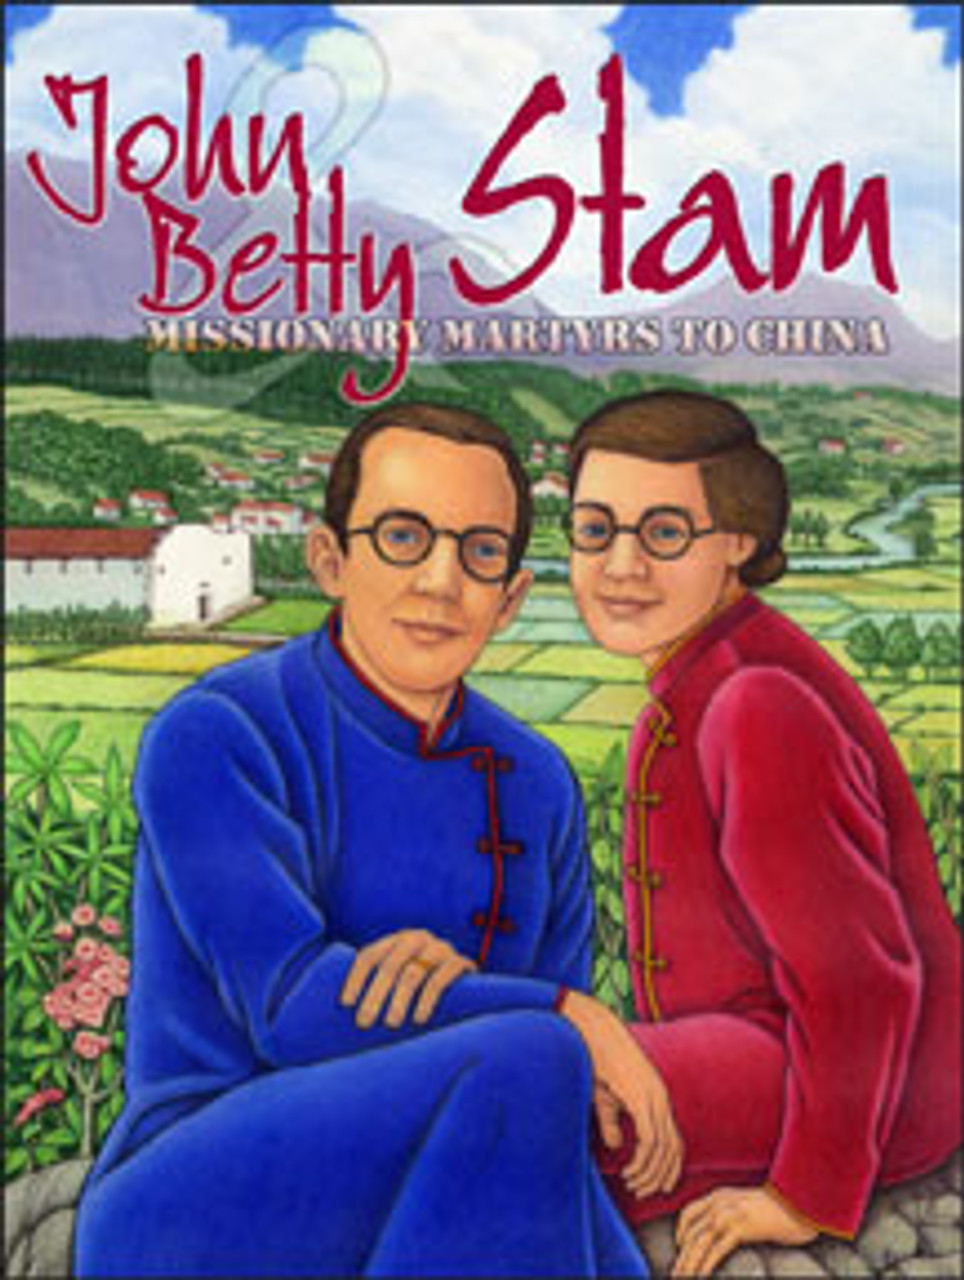 John & Betty Stam Martyrs To China (lesson guide)*